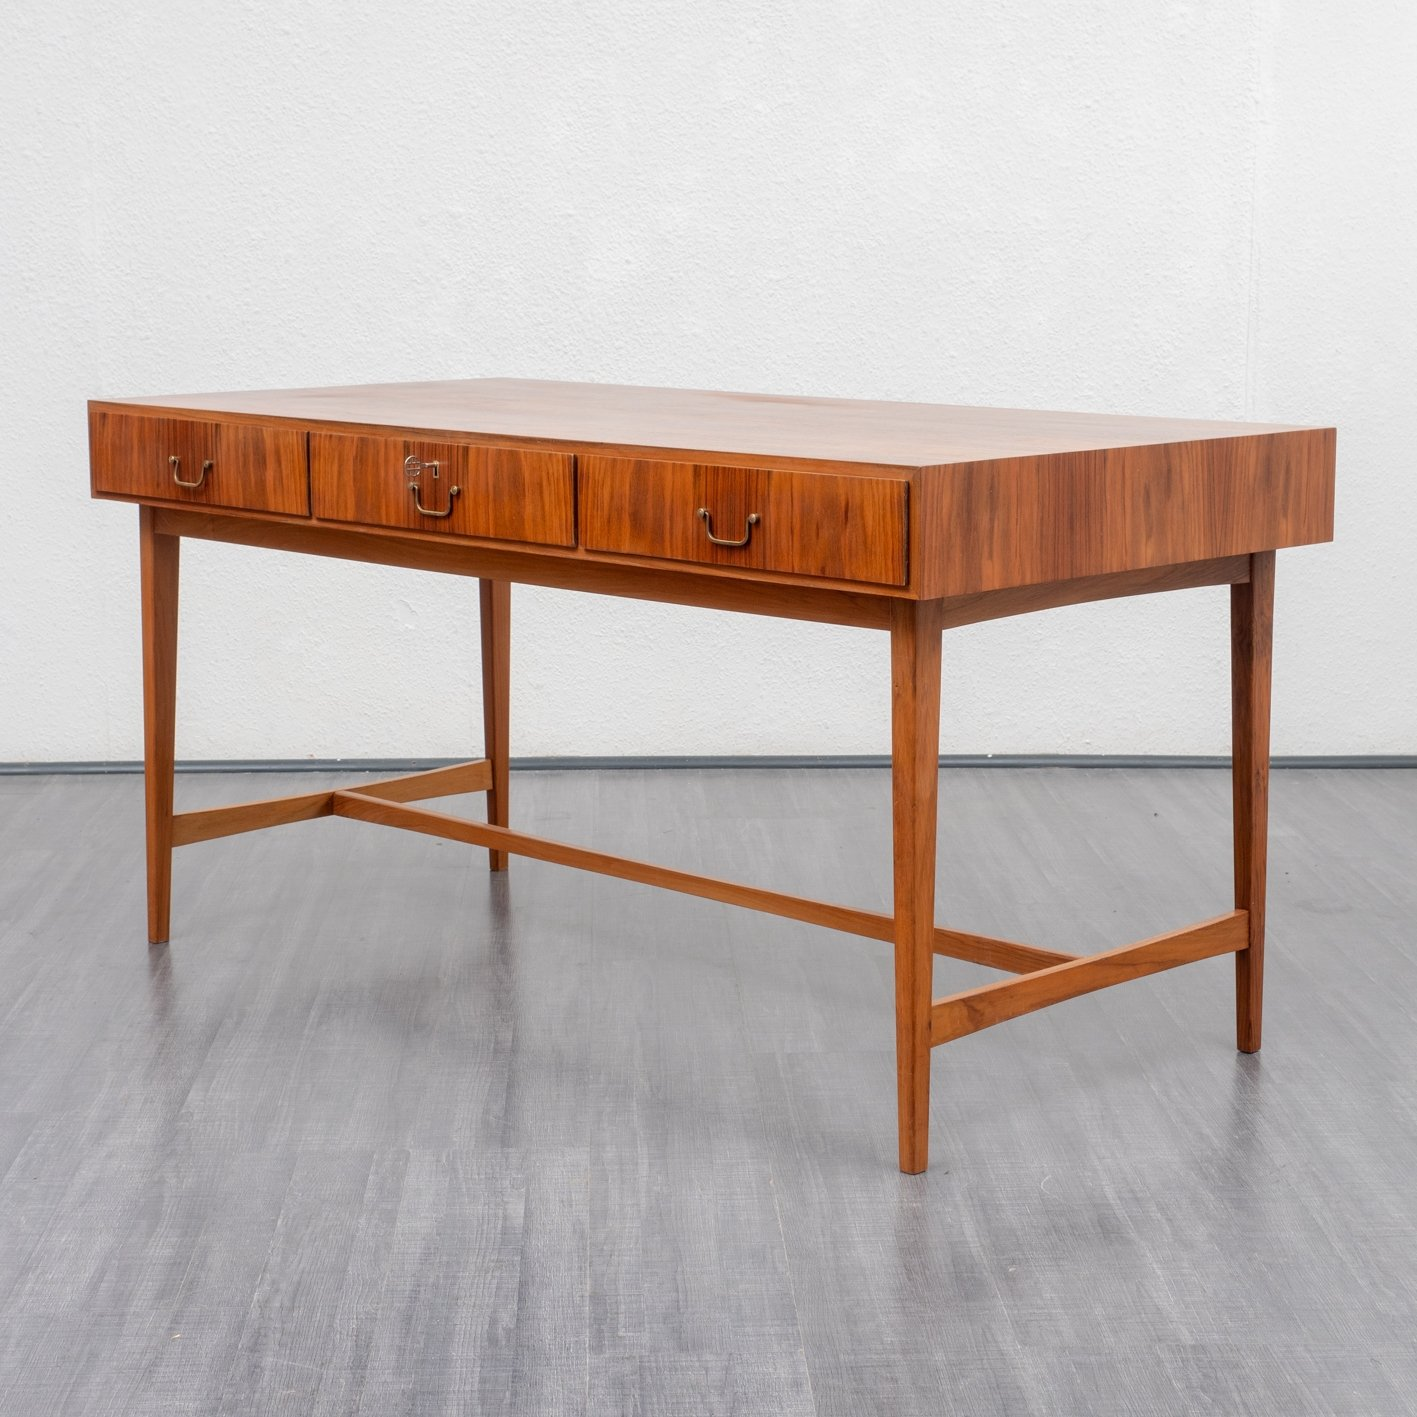 Image of: Large Midcentury Desk In Walnut 1950s 82462